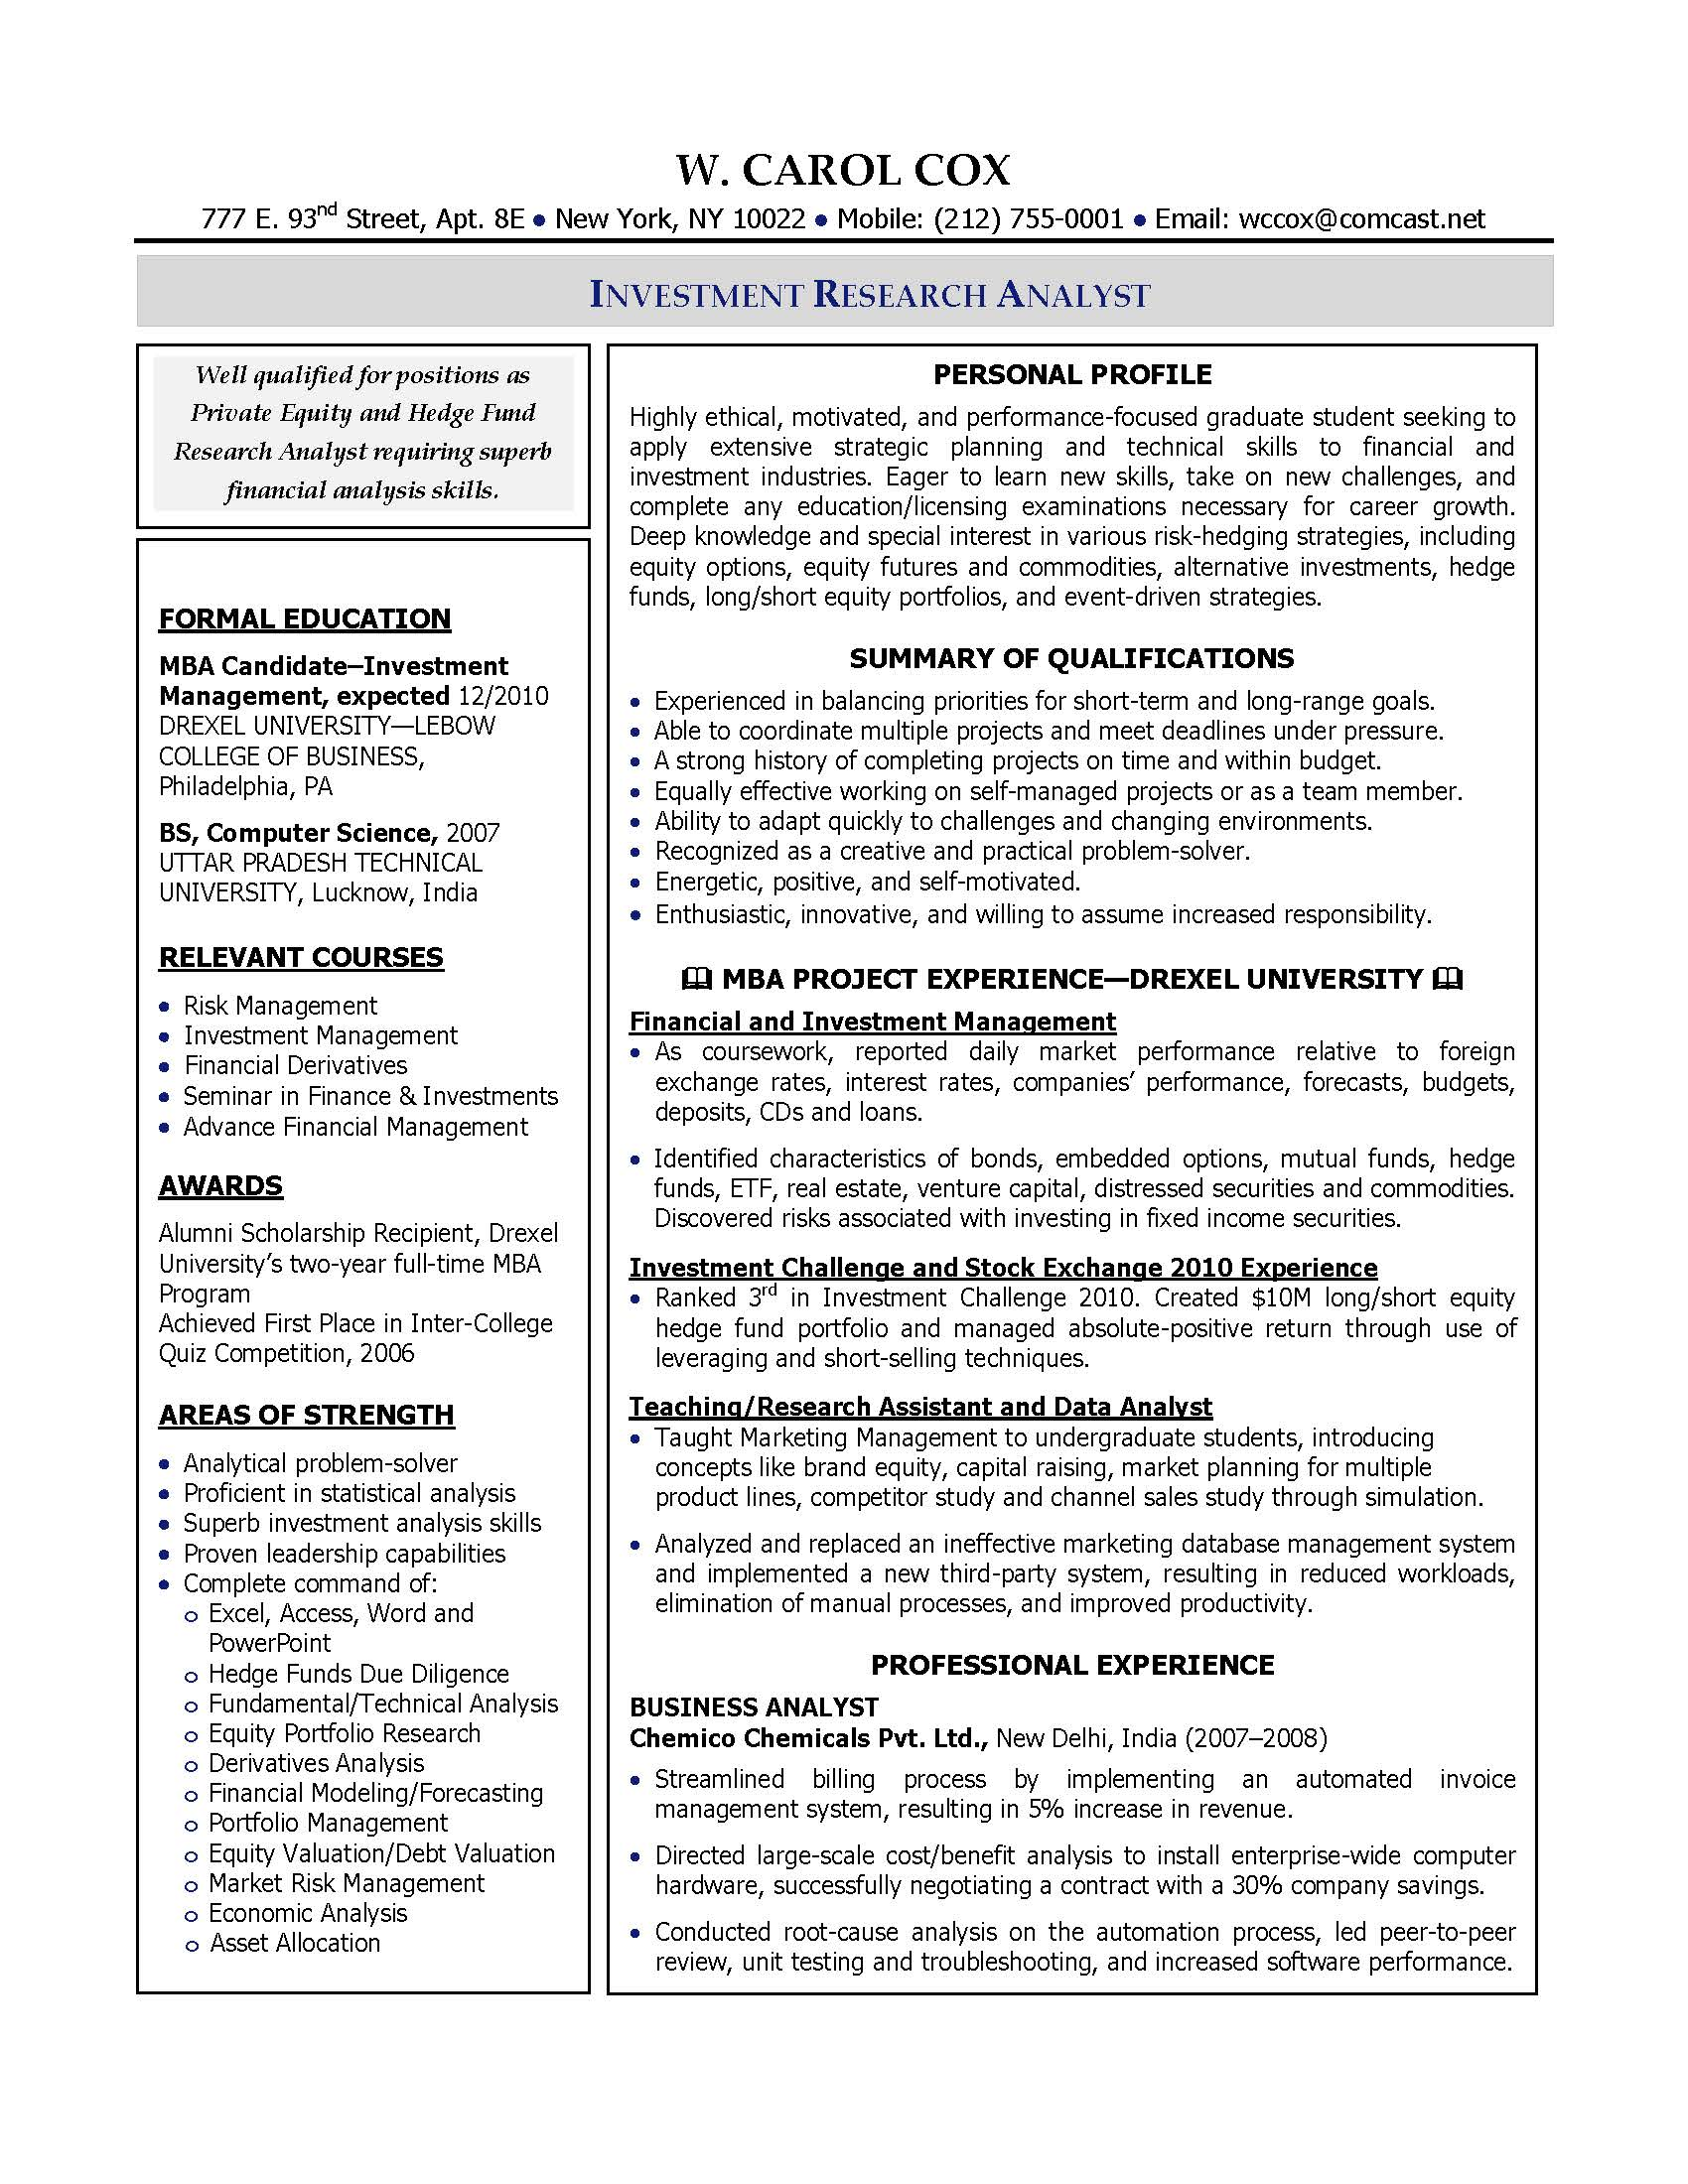 examples of financial services resumes